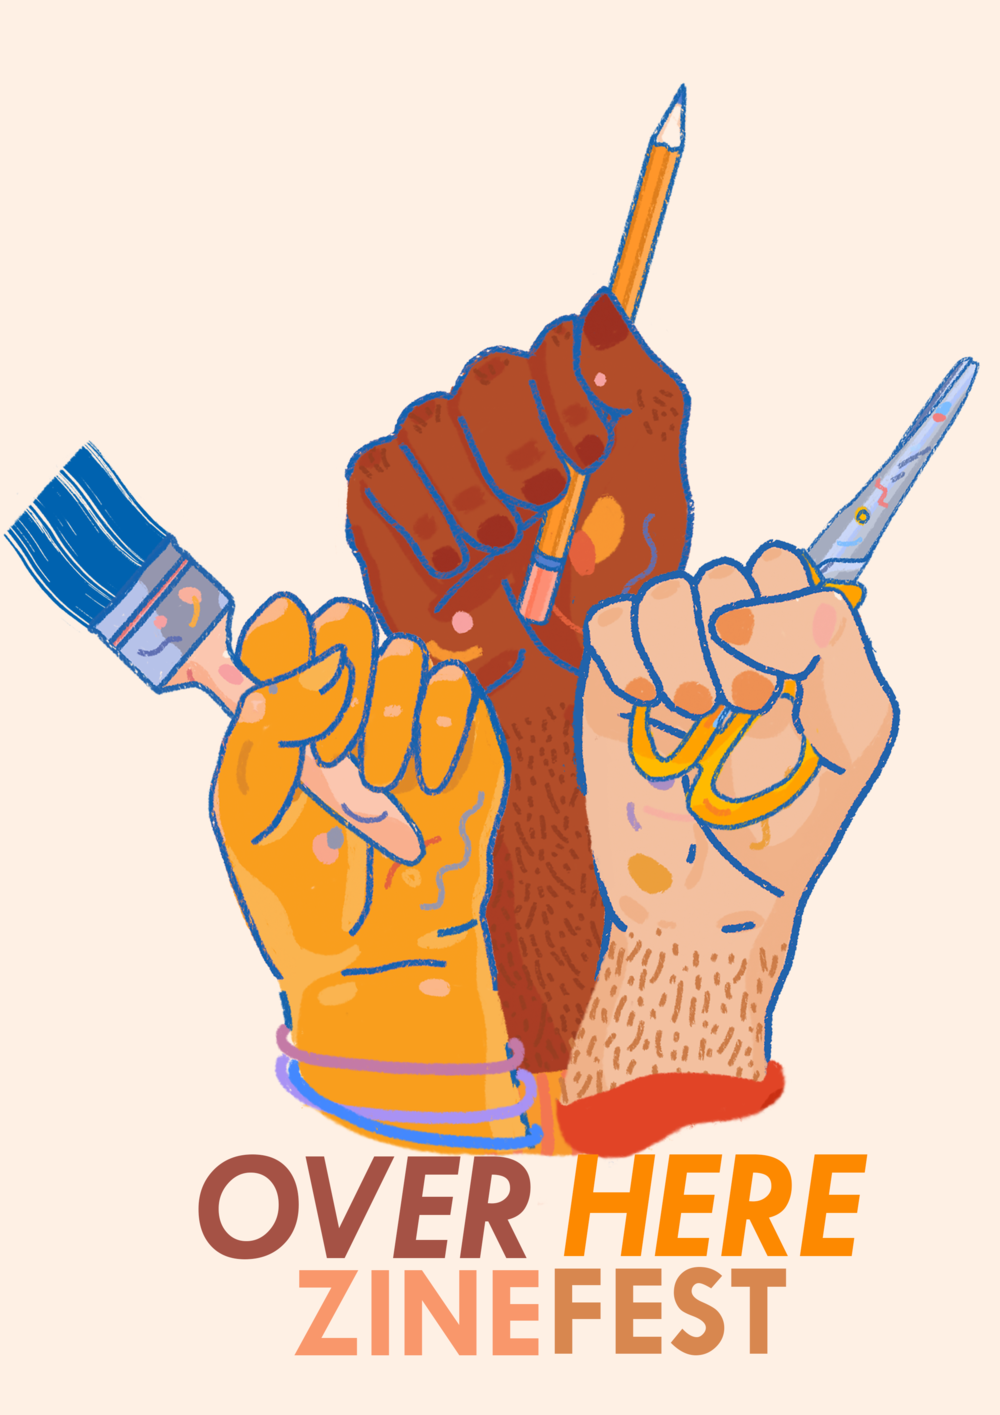 Over Here Zine Fest      Poster design, 2018    A space showcasing and celebrating DIY culture and activism up North of England by people of colour. #takeupspace